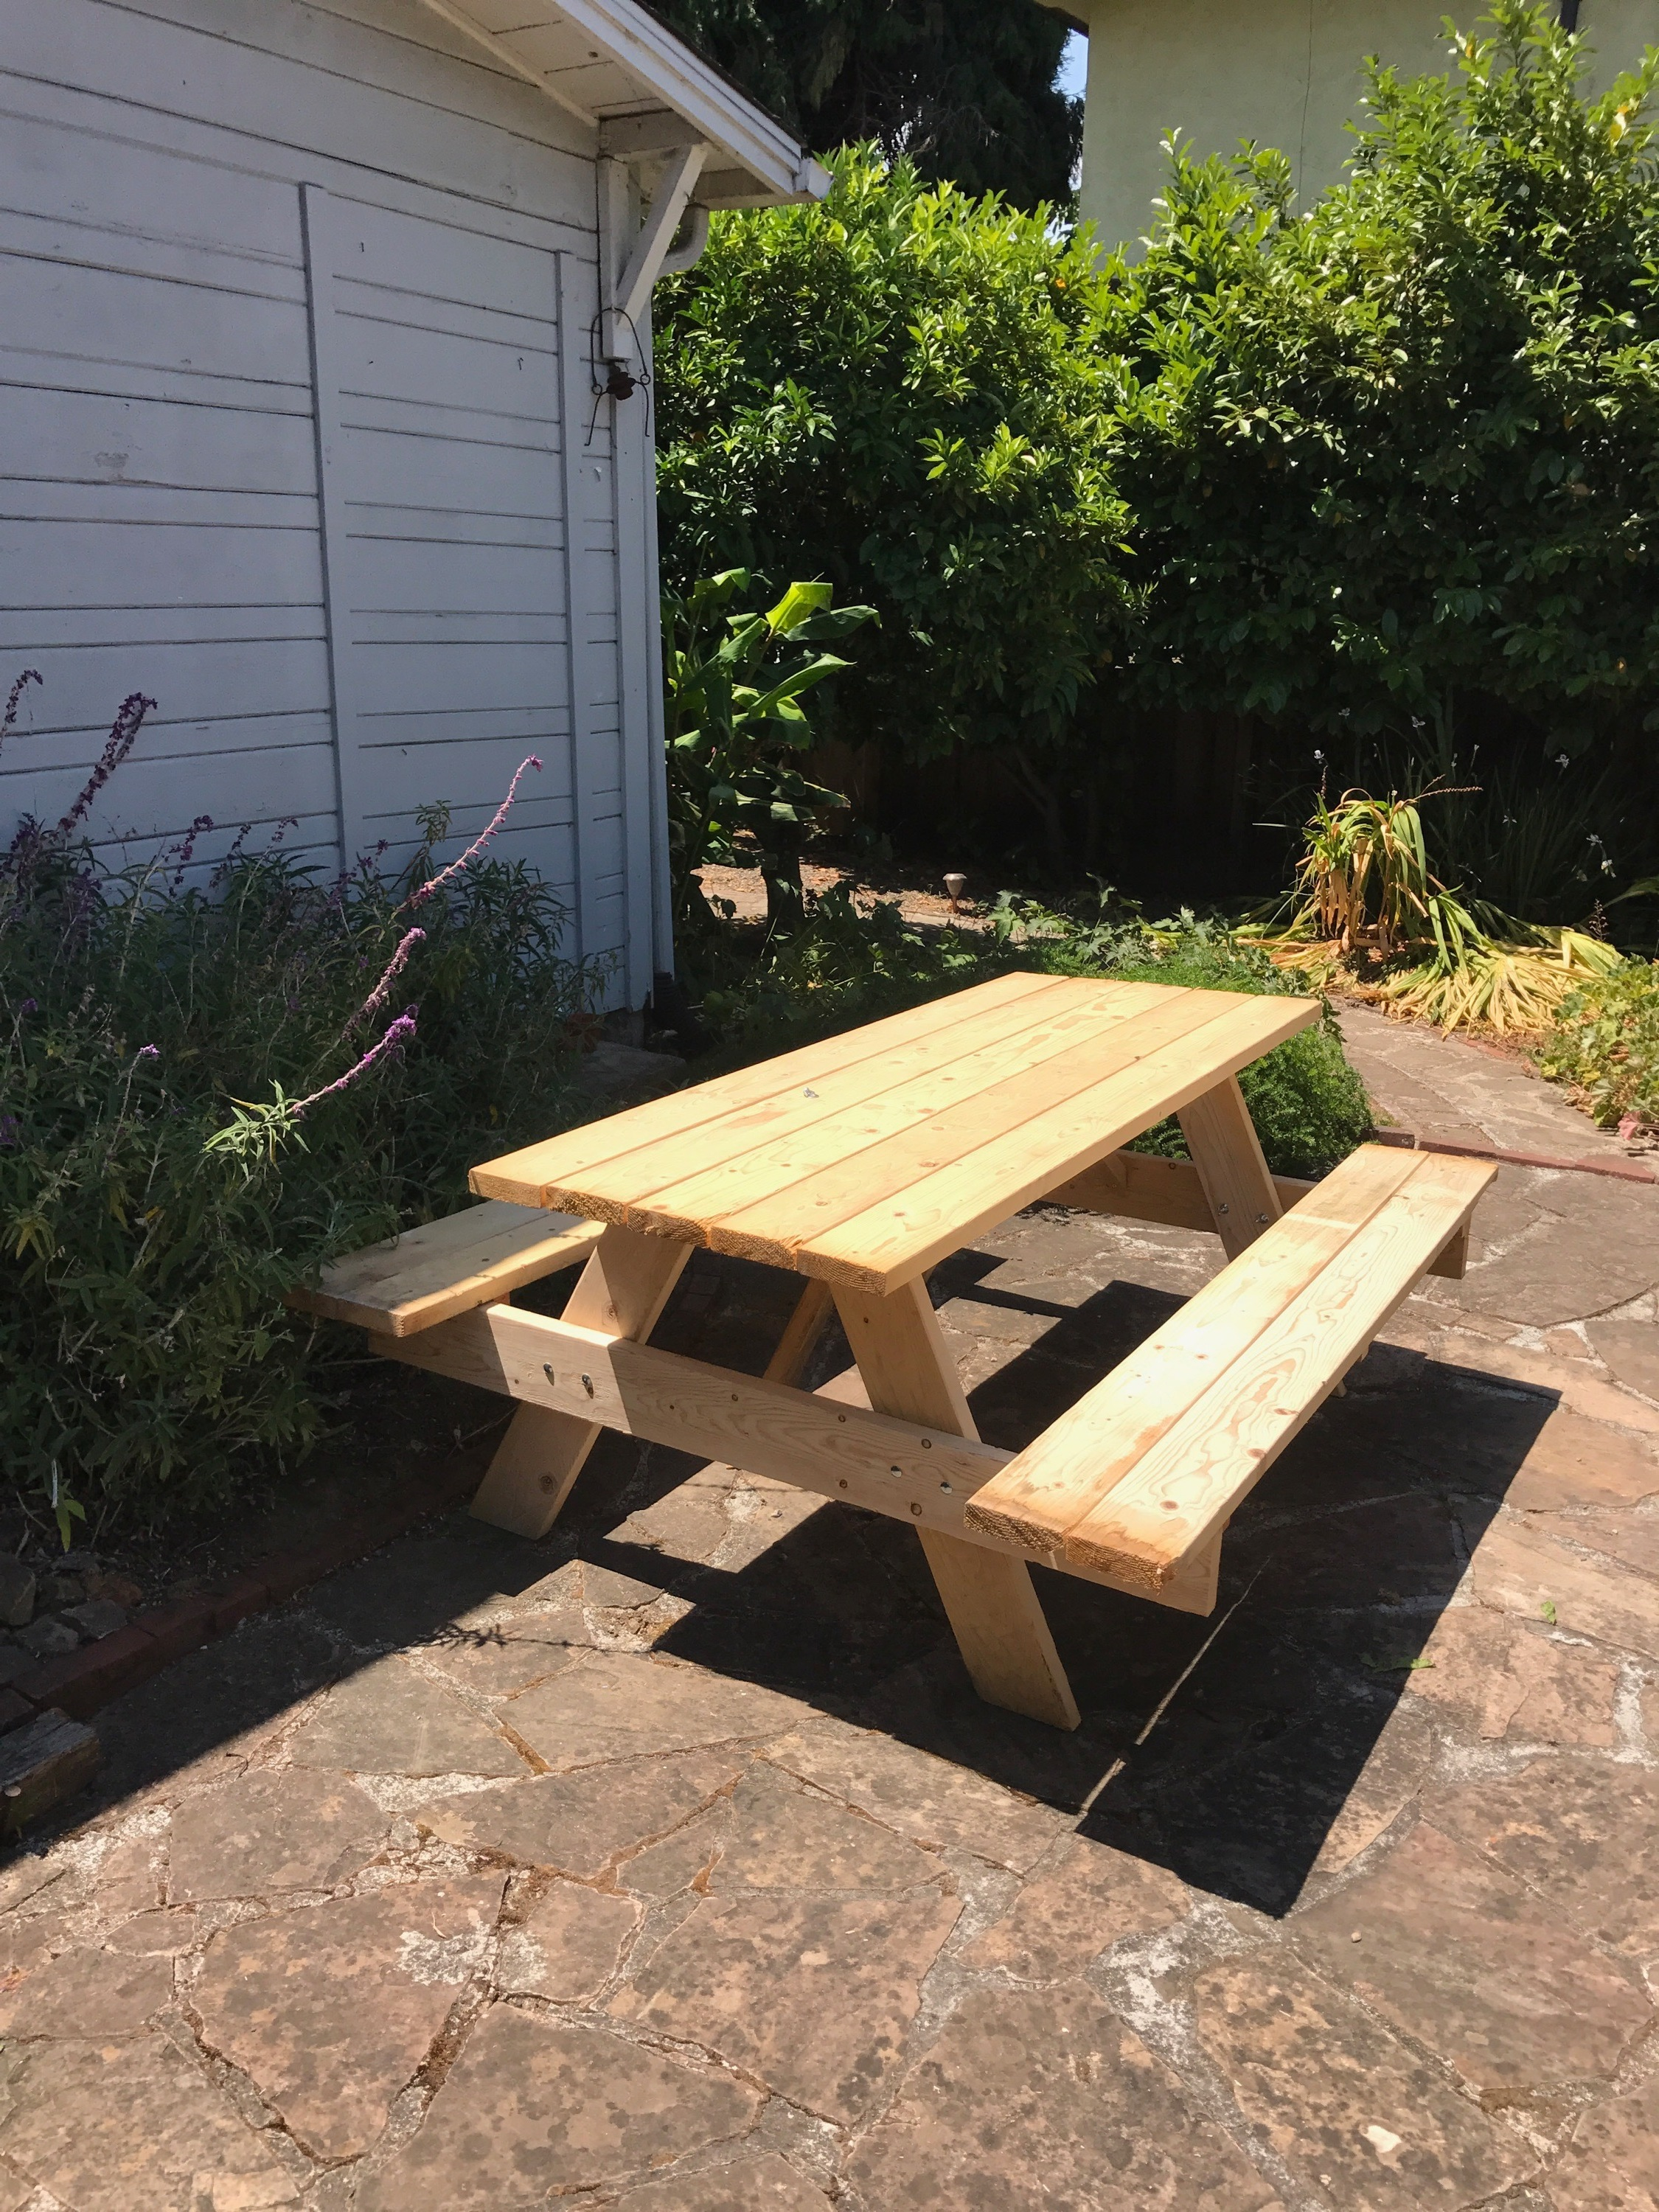 We got a picnic table (Andy couldn't ride home in the car from Home Depot because it was too big)